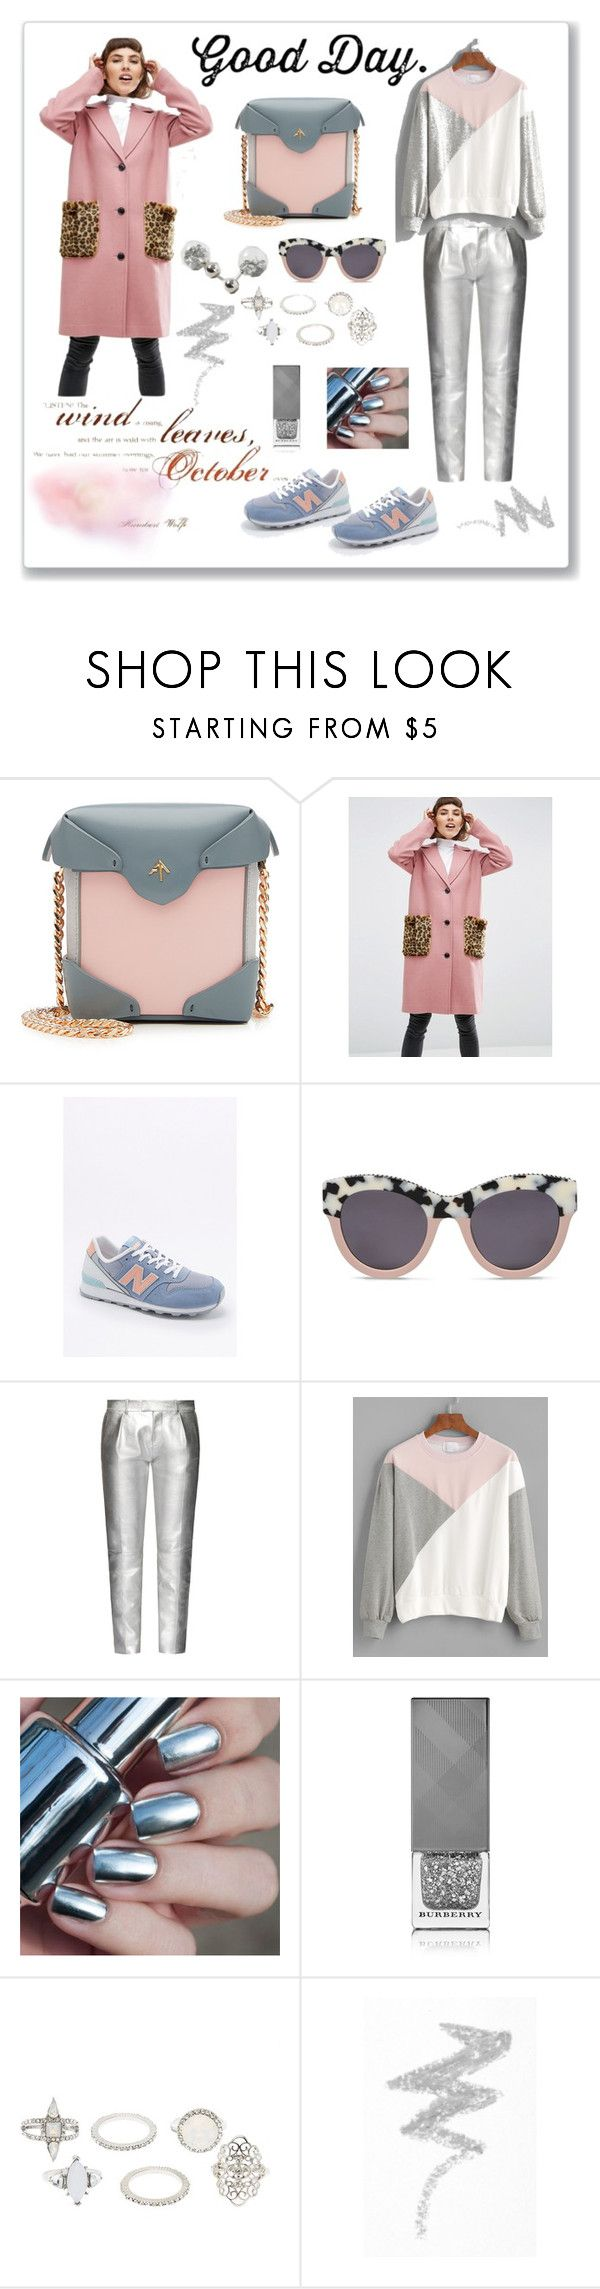 """""""Silver&rose"""" by dilka-ylibka on Polyvore featuring мода, MANU Atelier, ASOS, New Balance, STELLA McCARTNEY, Tod's, Burberry, Charlotte Russe, NYX и Dorothy Perkins"""